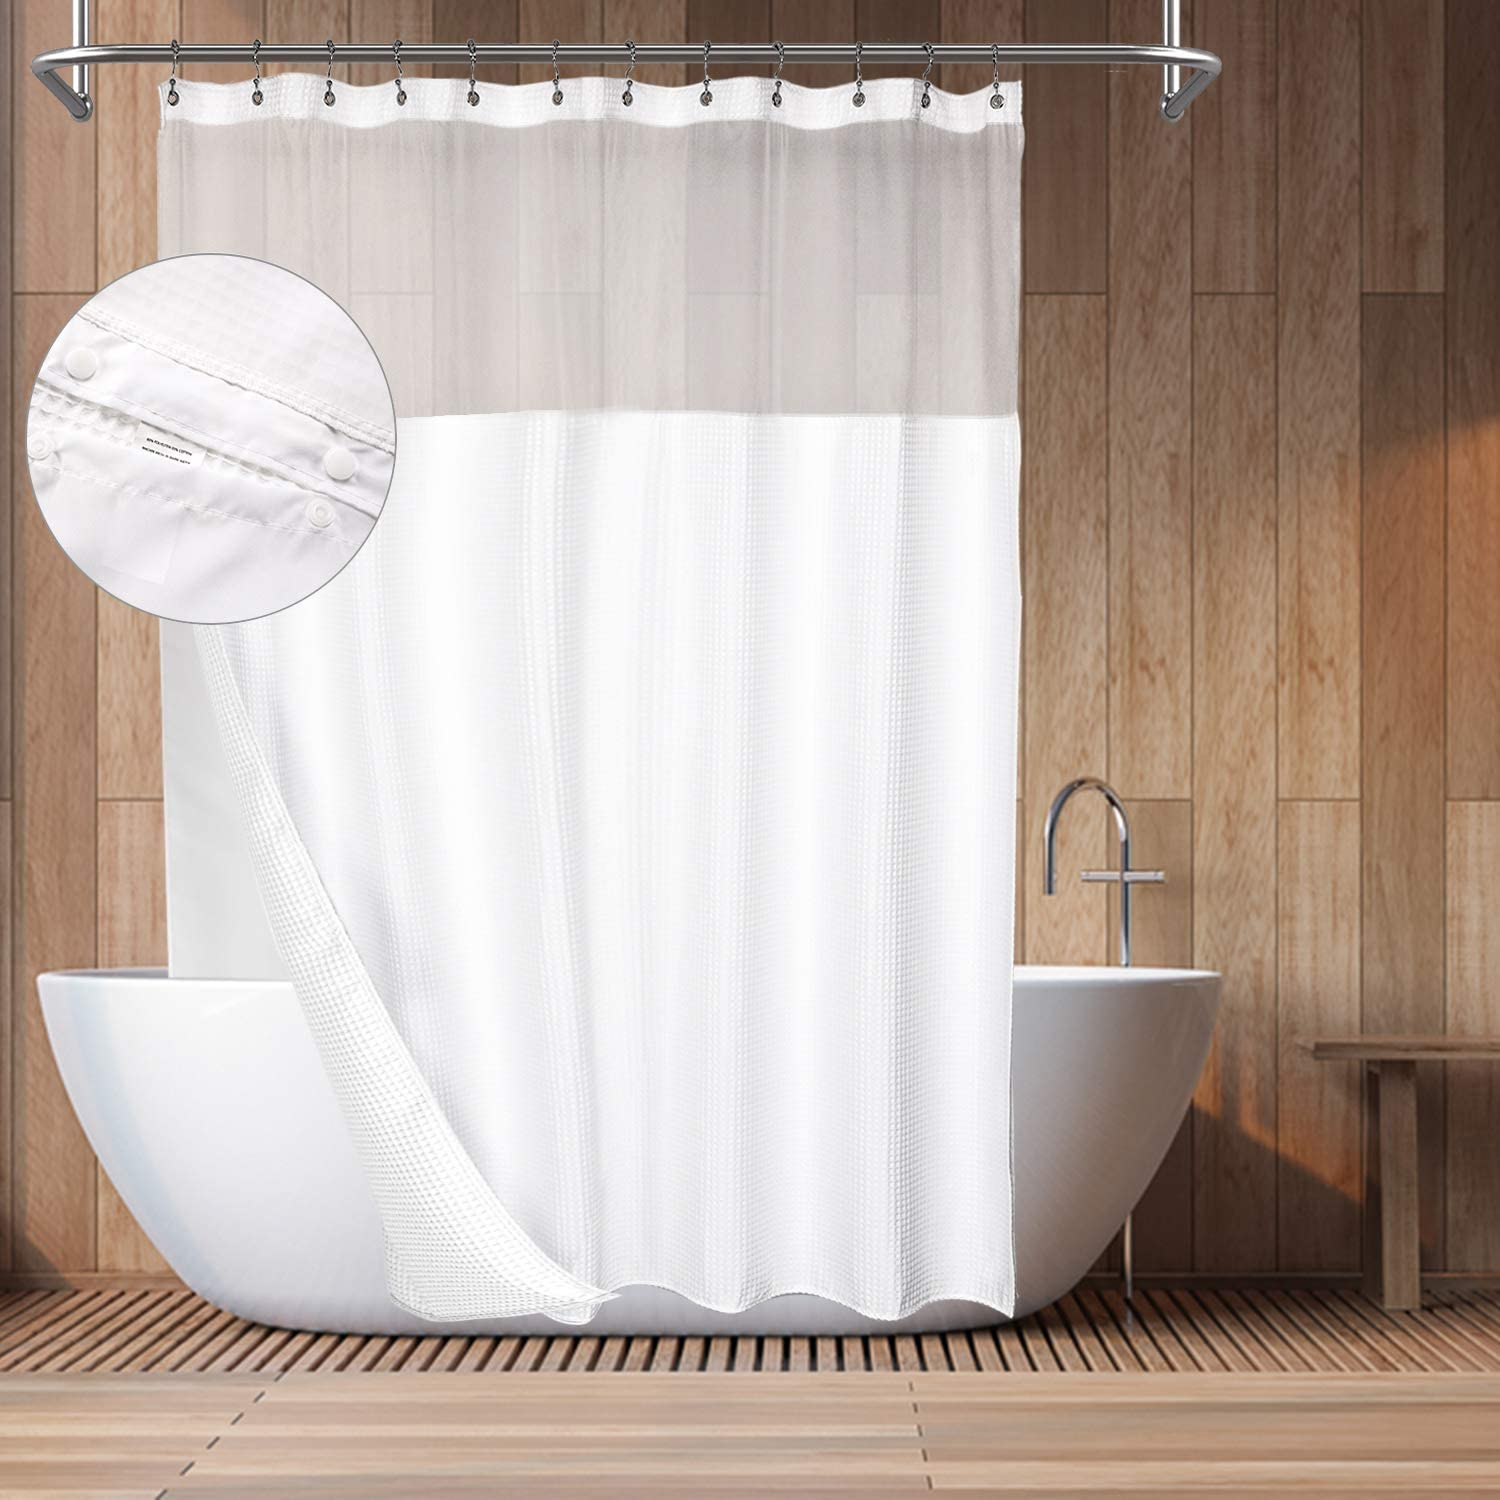 Barossa Design Hotel Style Cotton Shower Curtain with Snap-in Fabric Liner, Mesh Window Top, Honeycomb Waffle Weave Cotton Blend Fabric, Washable, White, 71x72 Inches